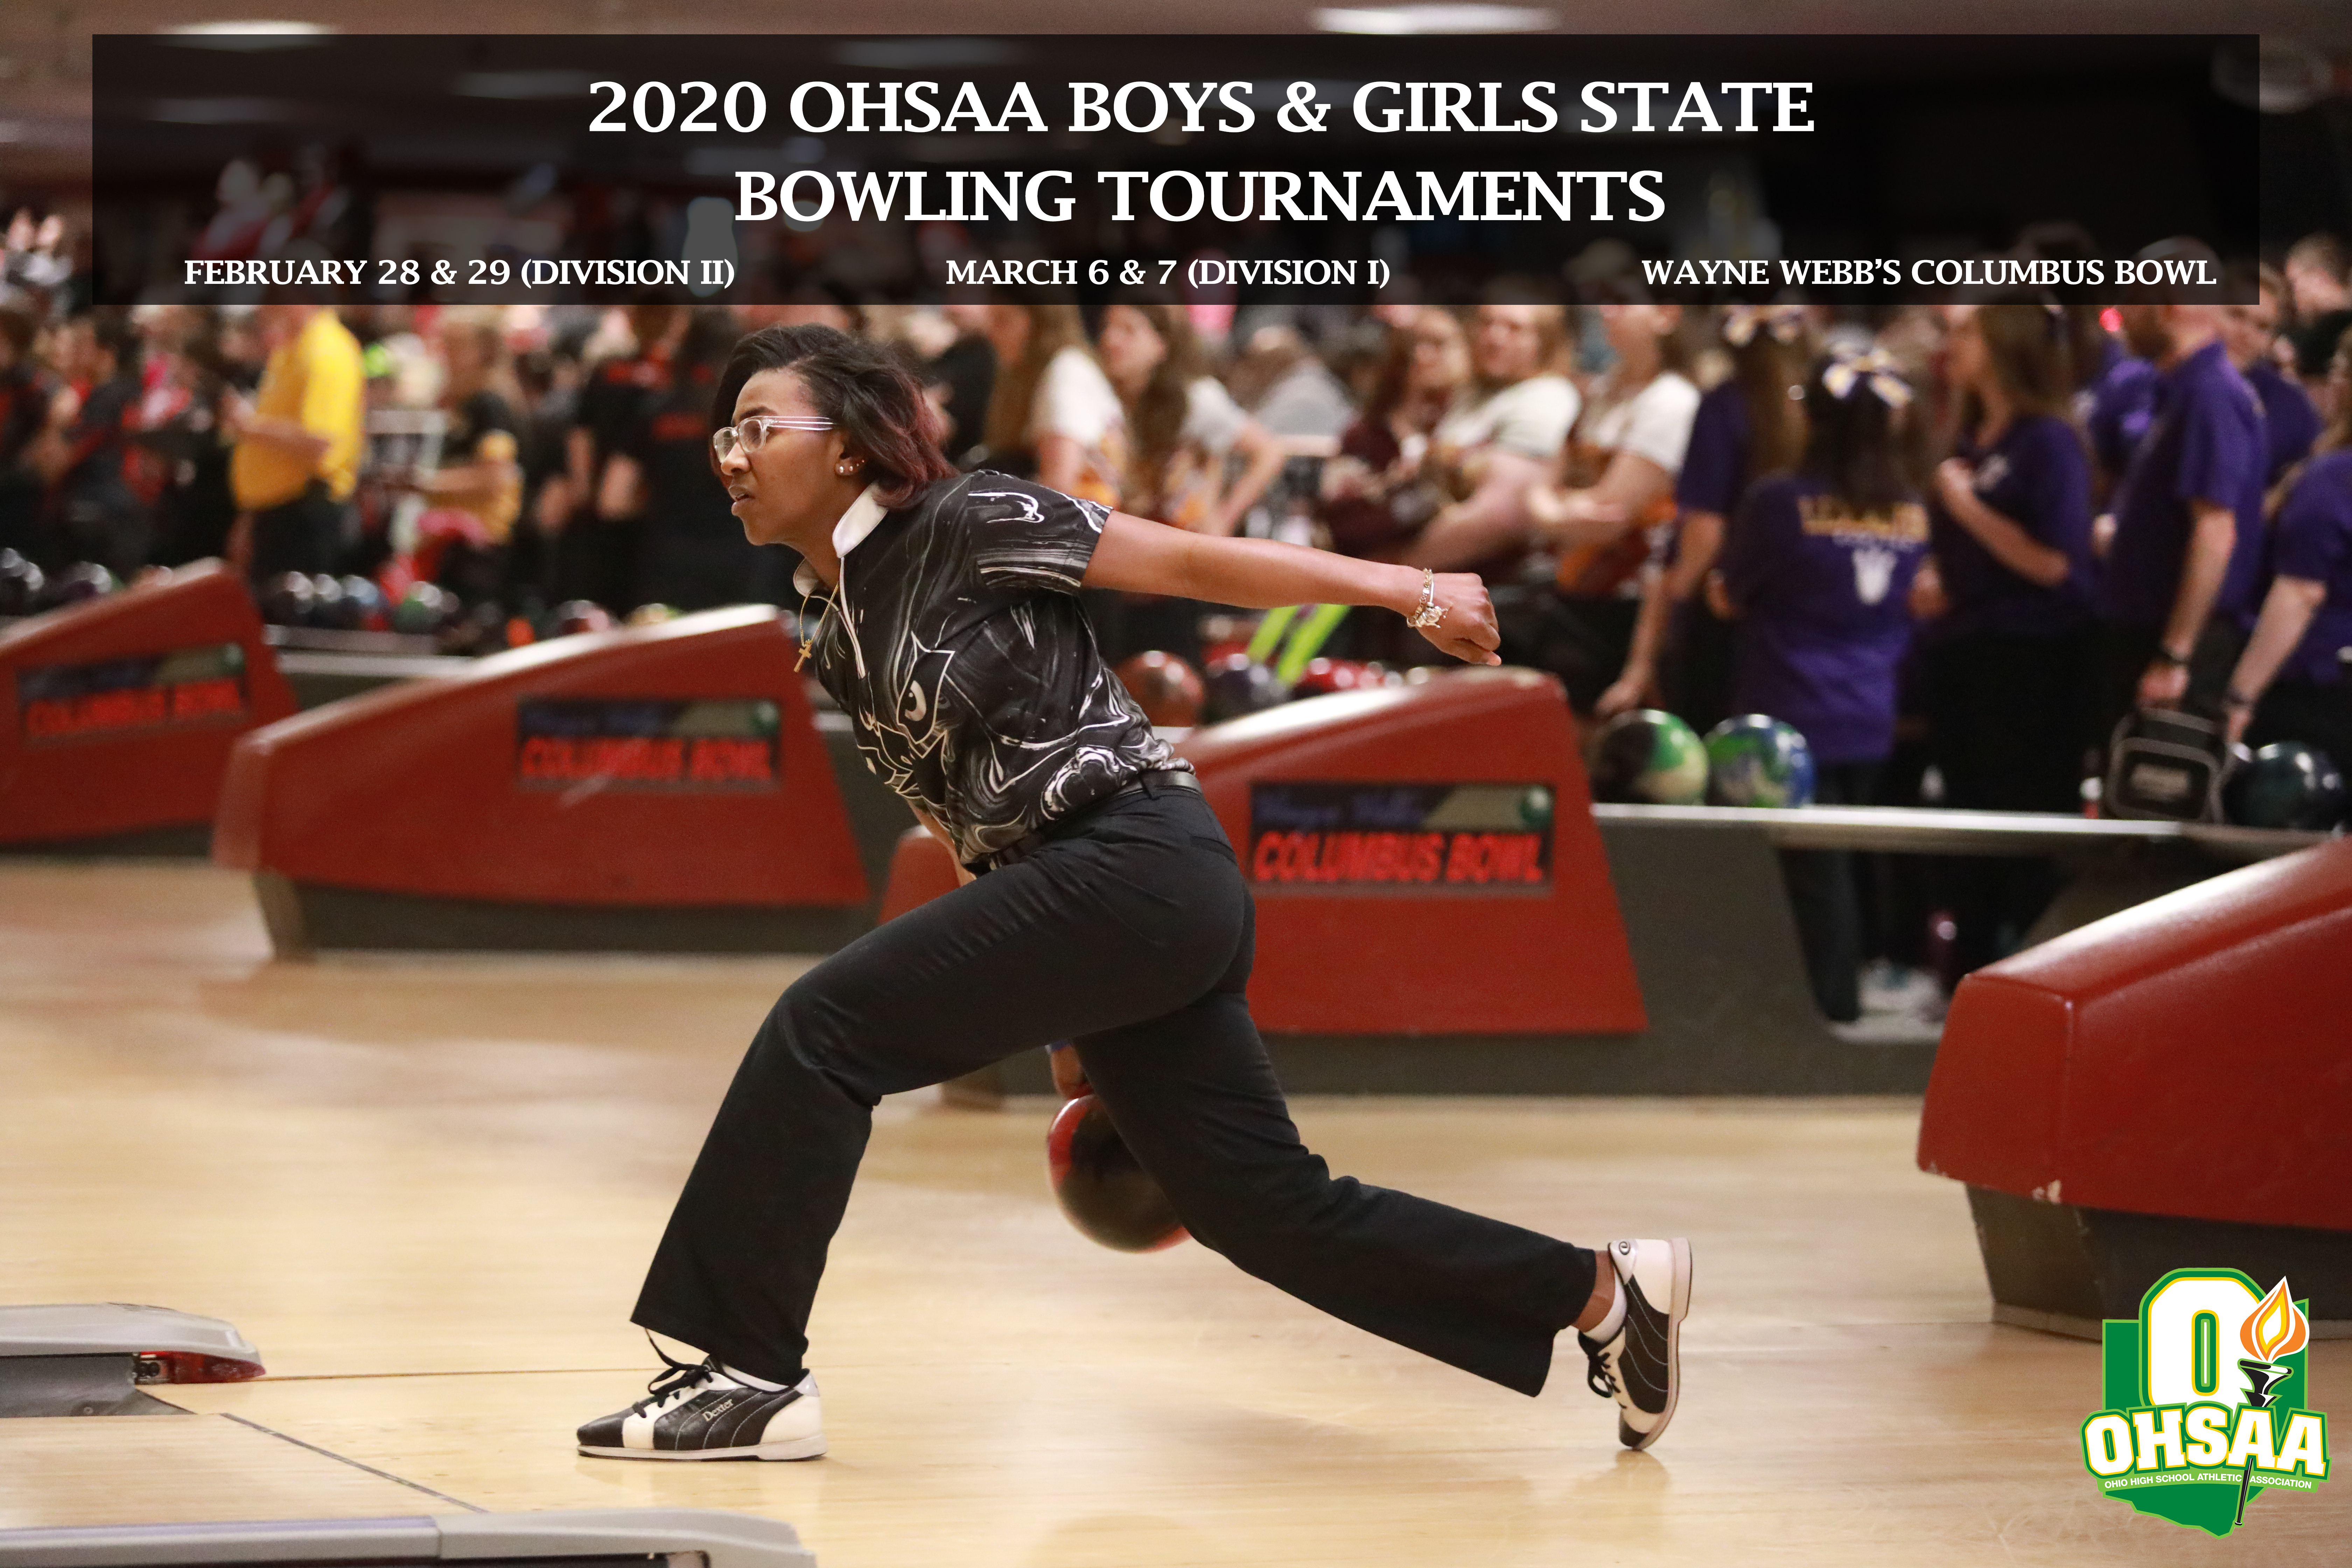 Ohsaa Sports Tournaments Bowling Bowling 2019 20 2020 Bowling State Tournament Coverage